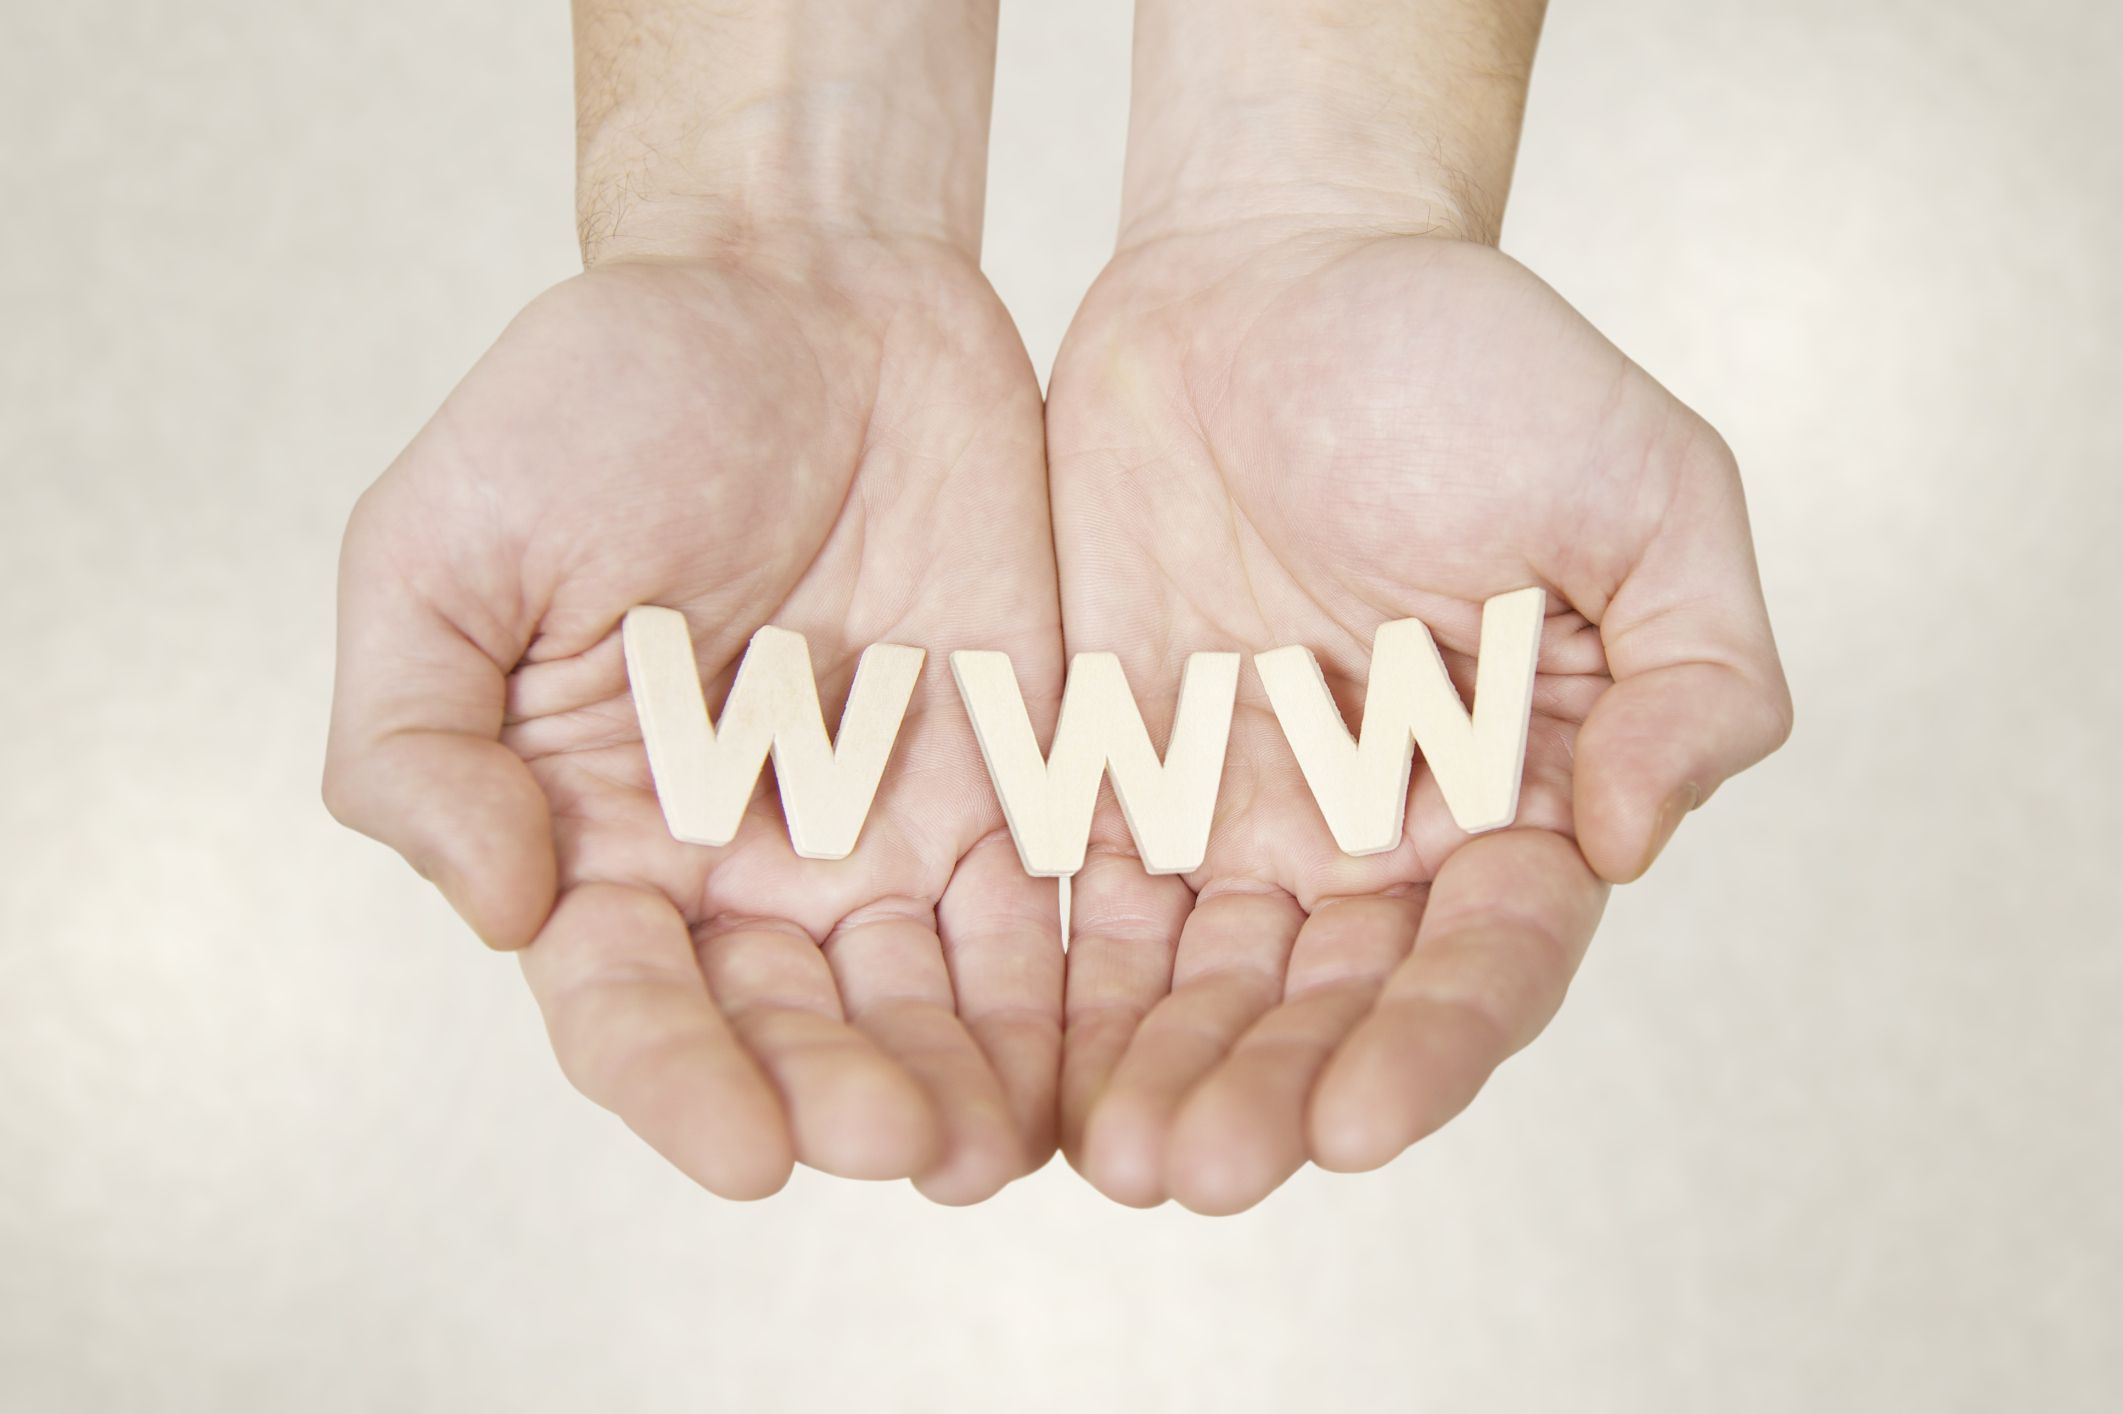 world wide web letter blocks being held by hands